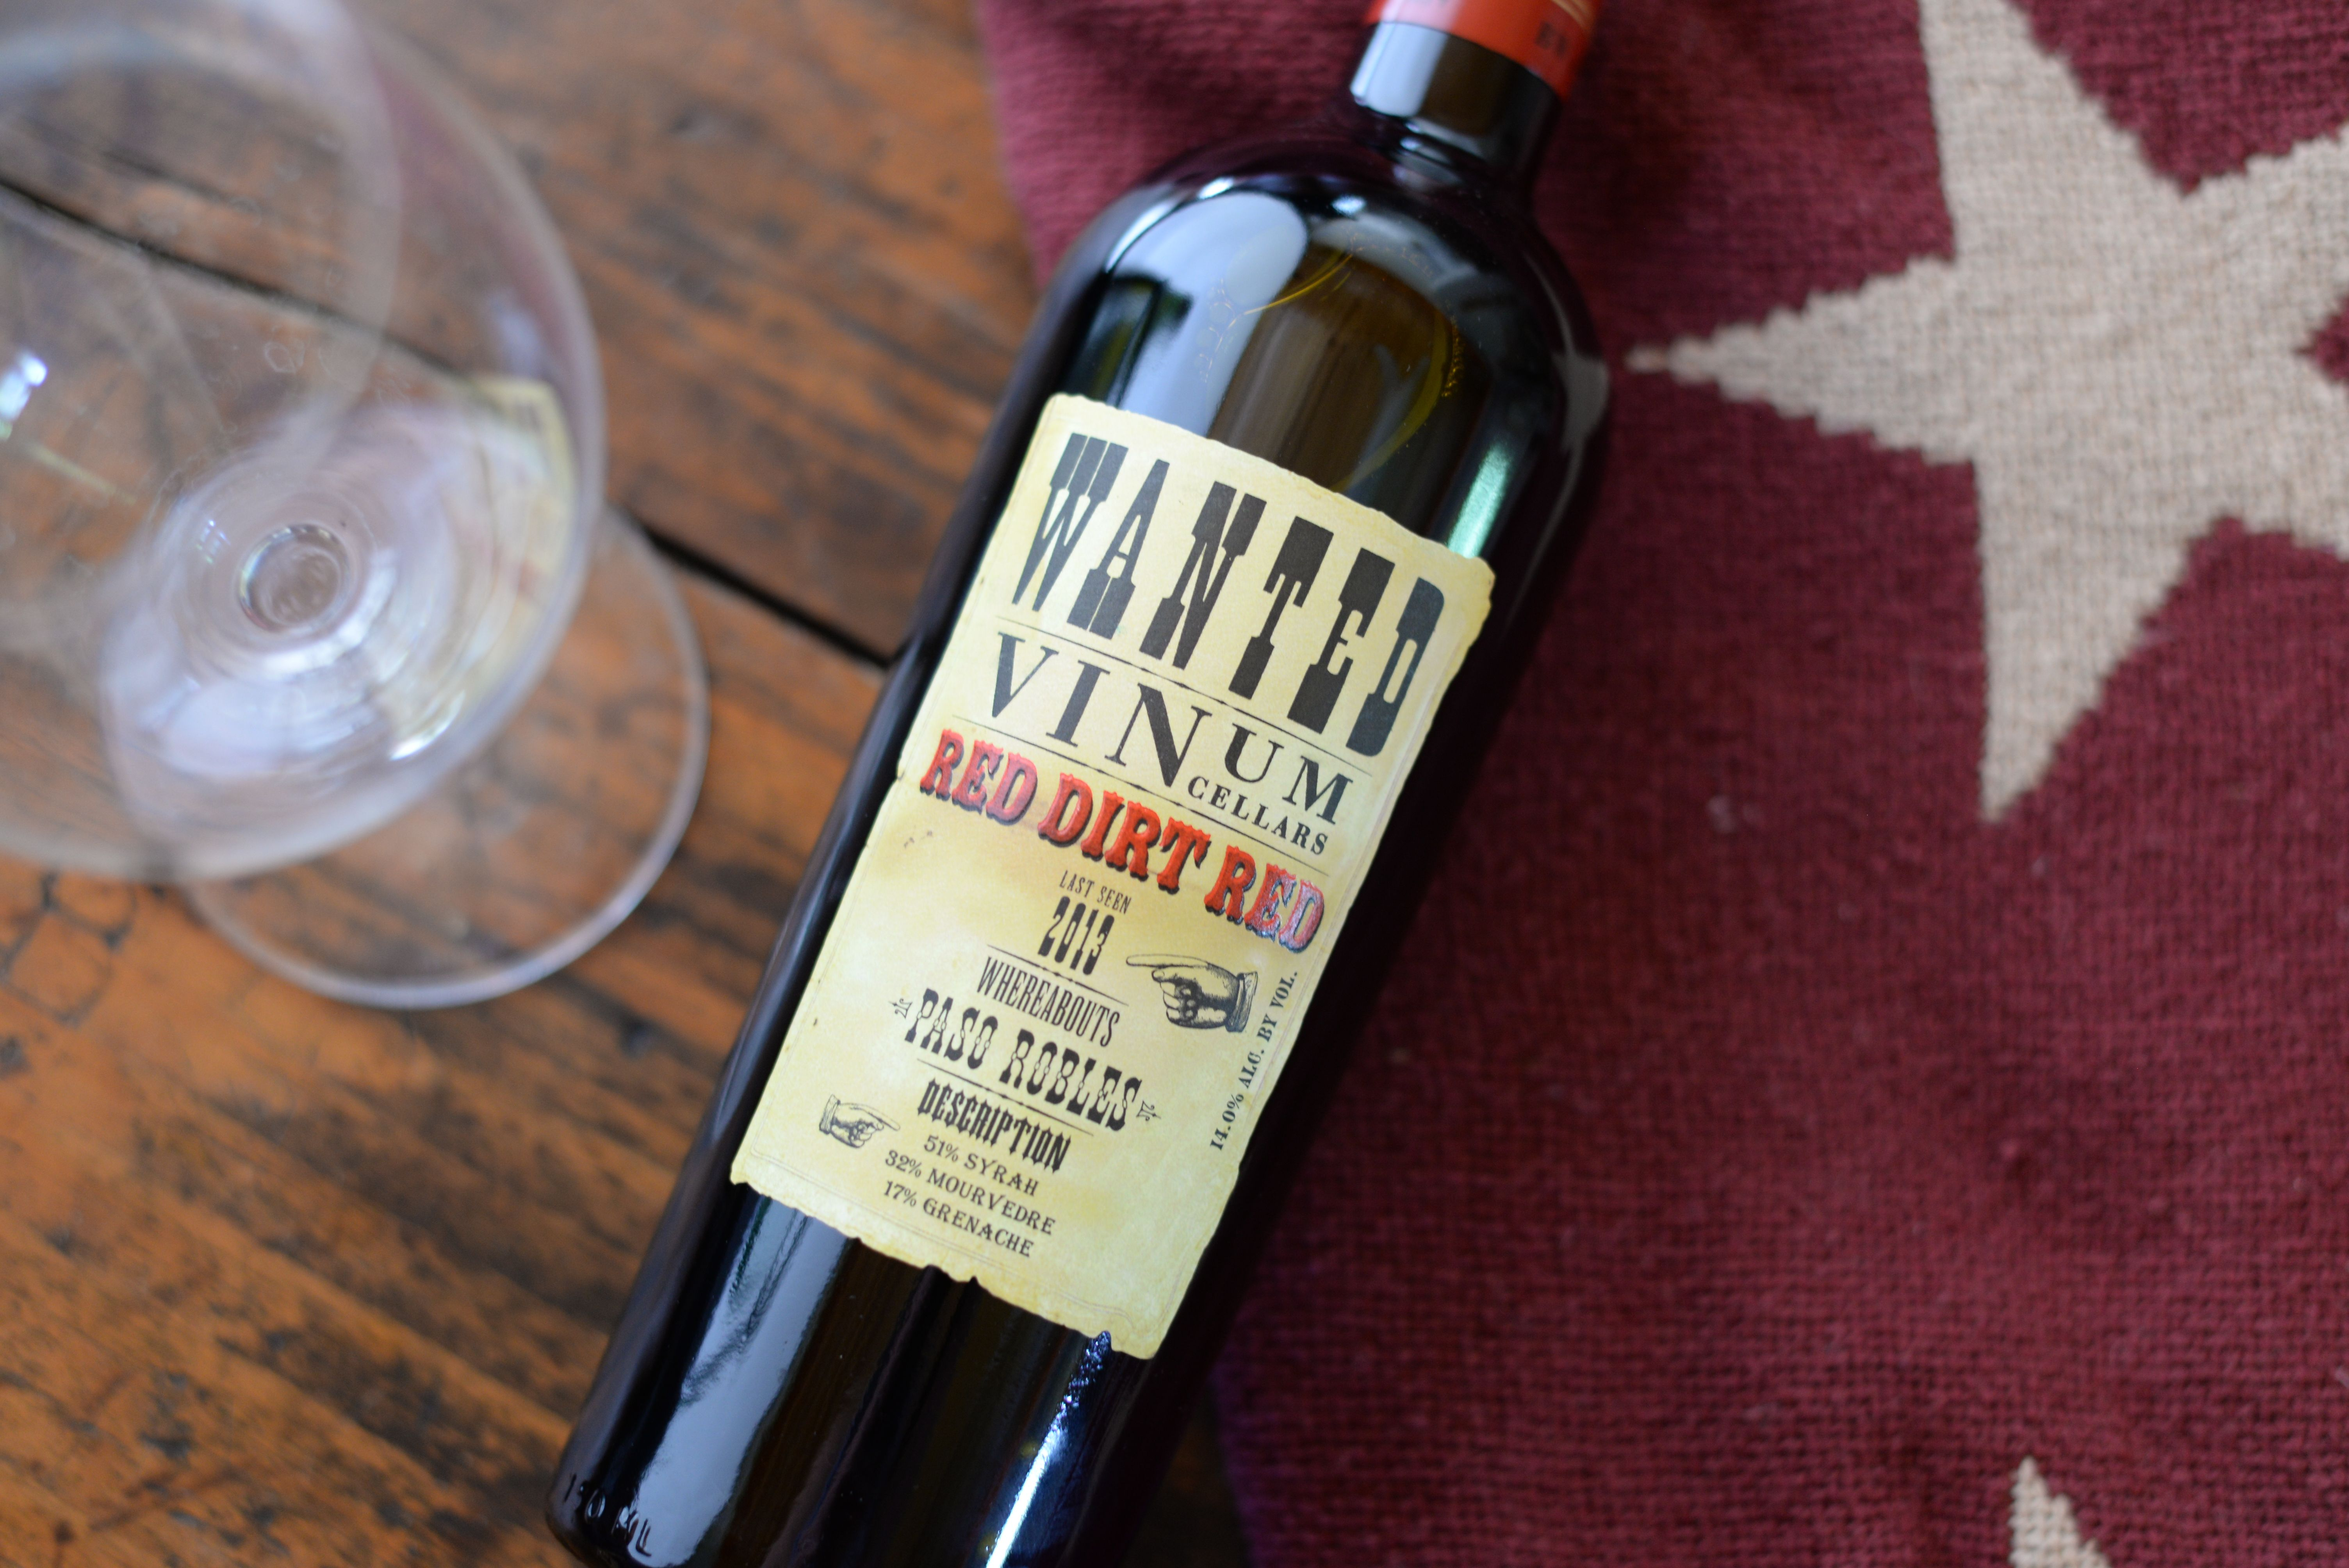 Vinum Cellars Red Dirt Red The red Rhone blend from Paso Robles is aromatic with white pepper spice and ripe with sweet cherry and plum notes ... & Vinum Cellars Red Dirt Red The red Rhone blend from Paso Robles is ...